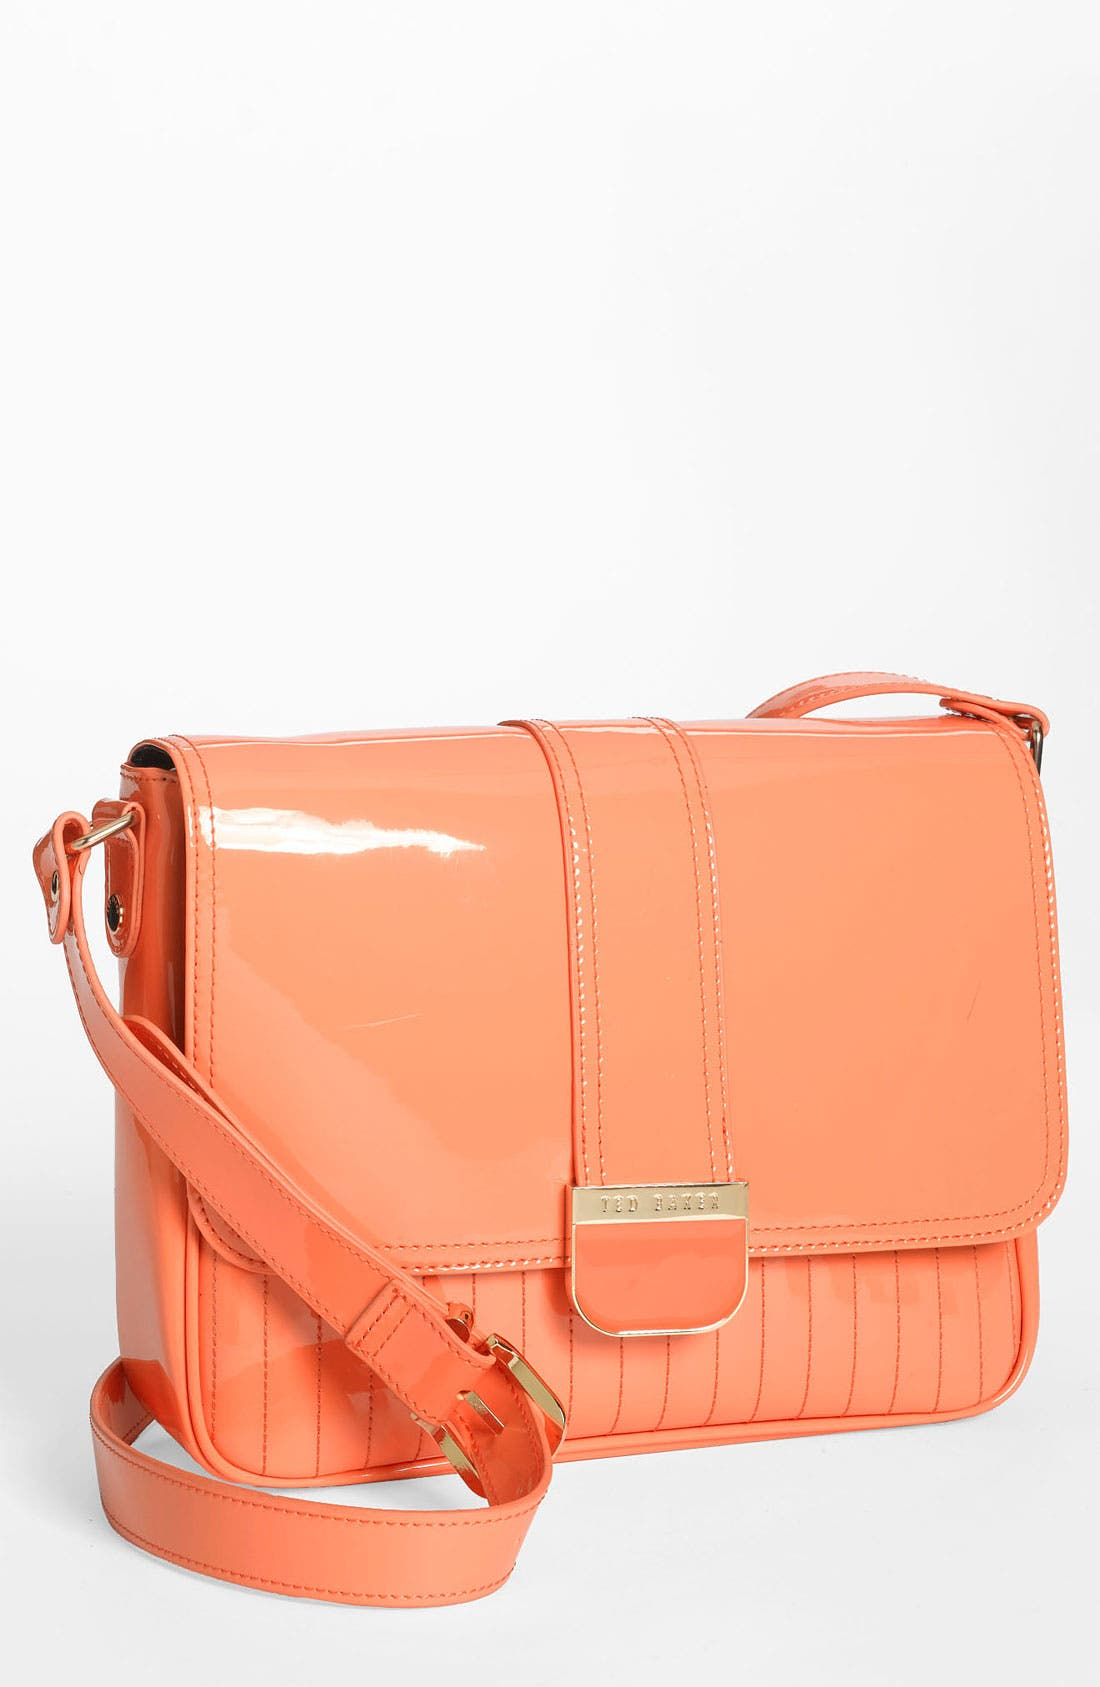 Main Image - Ted Baker London 'Large' Quilted Crossbody Bag